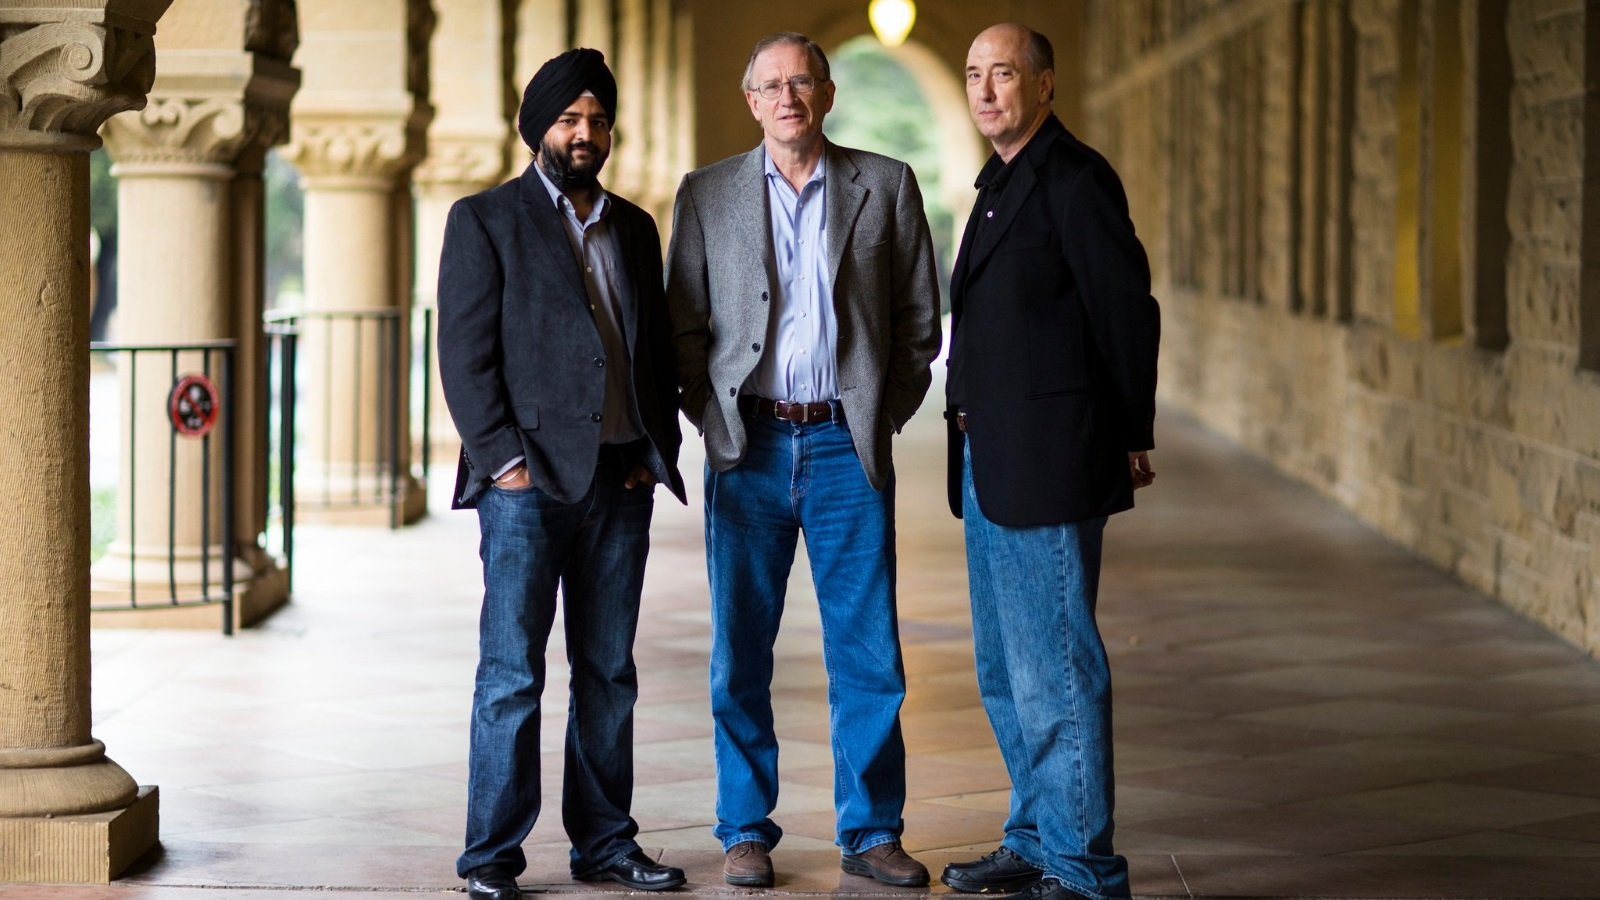 Founders of Ayasdi, Gurjeet Singh, Gunnar Carlsson, and Harlan Sexton (Image Credit -  Silicon Angle )